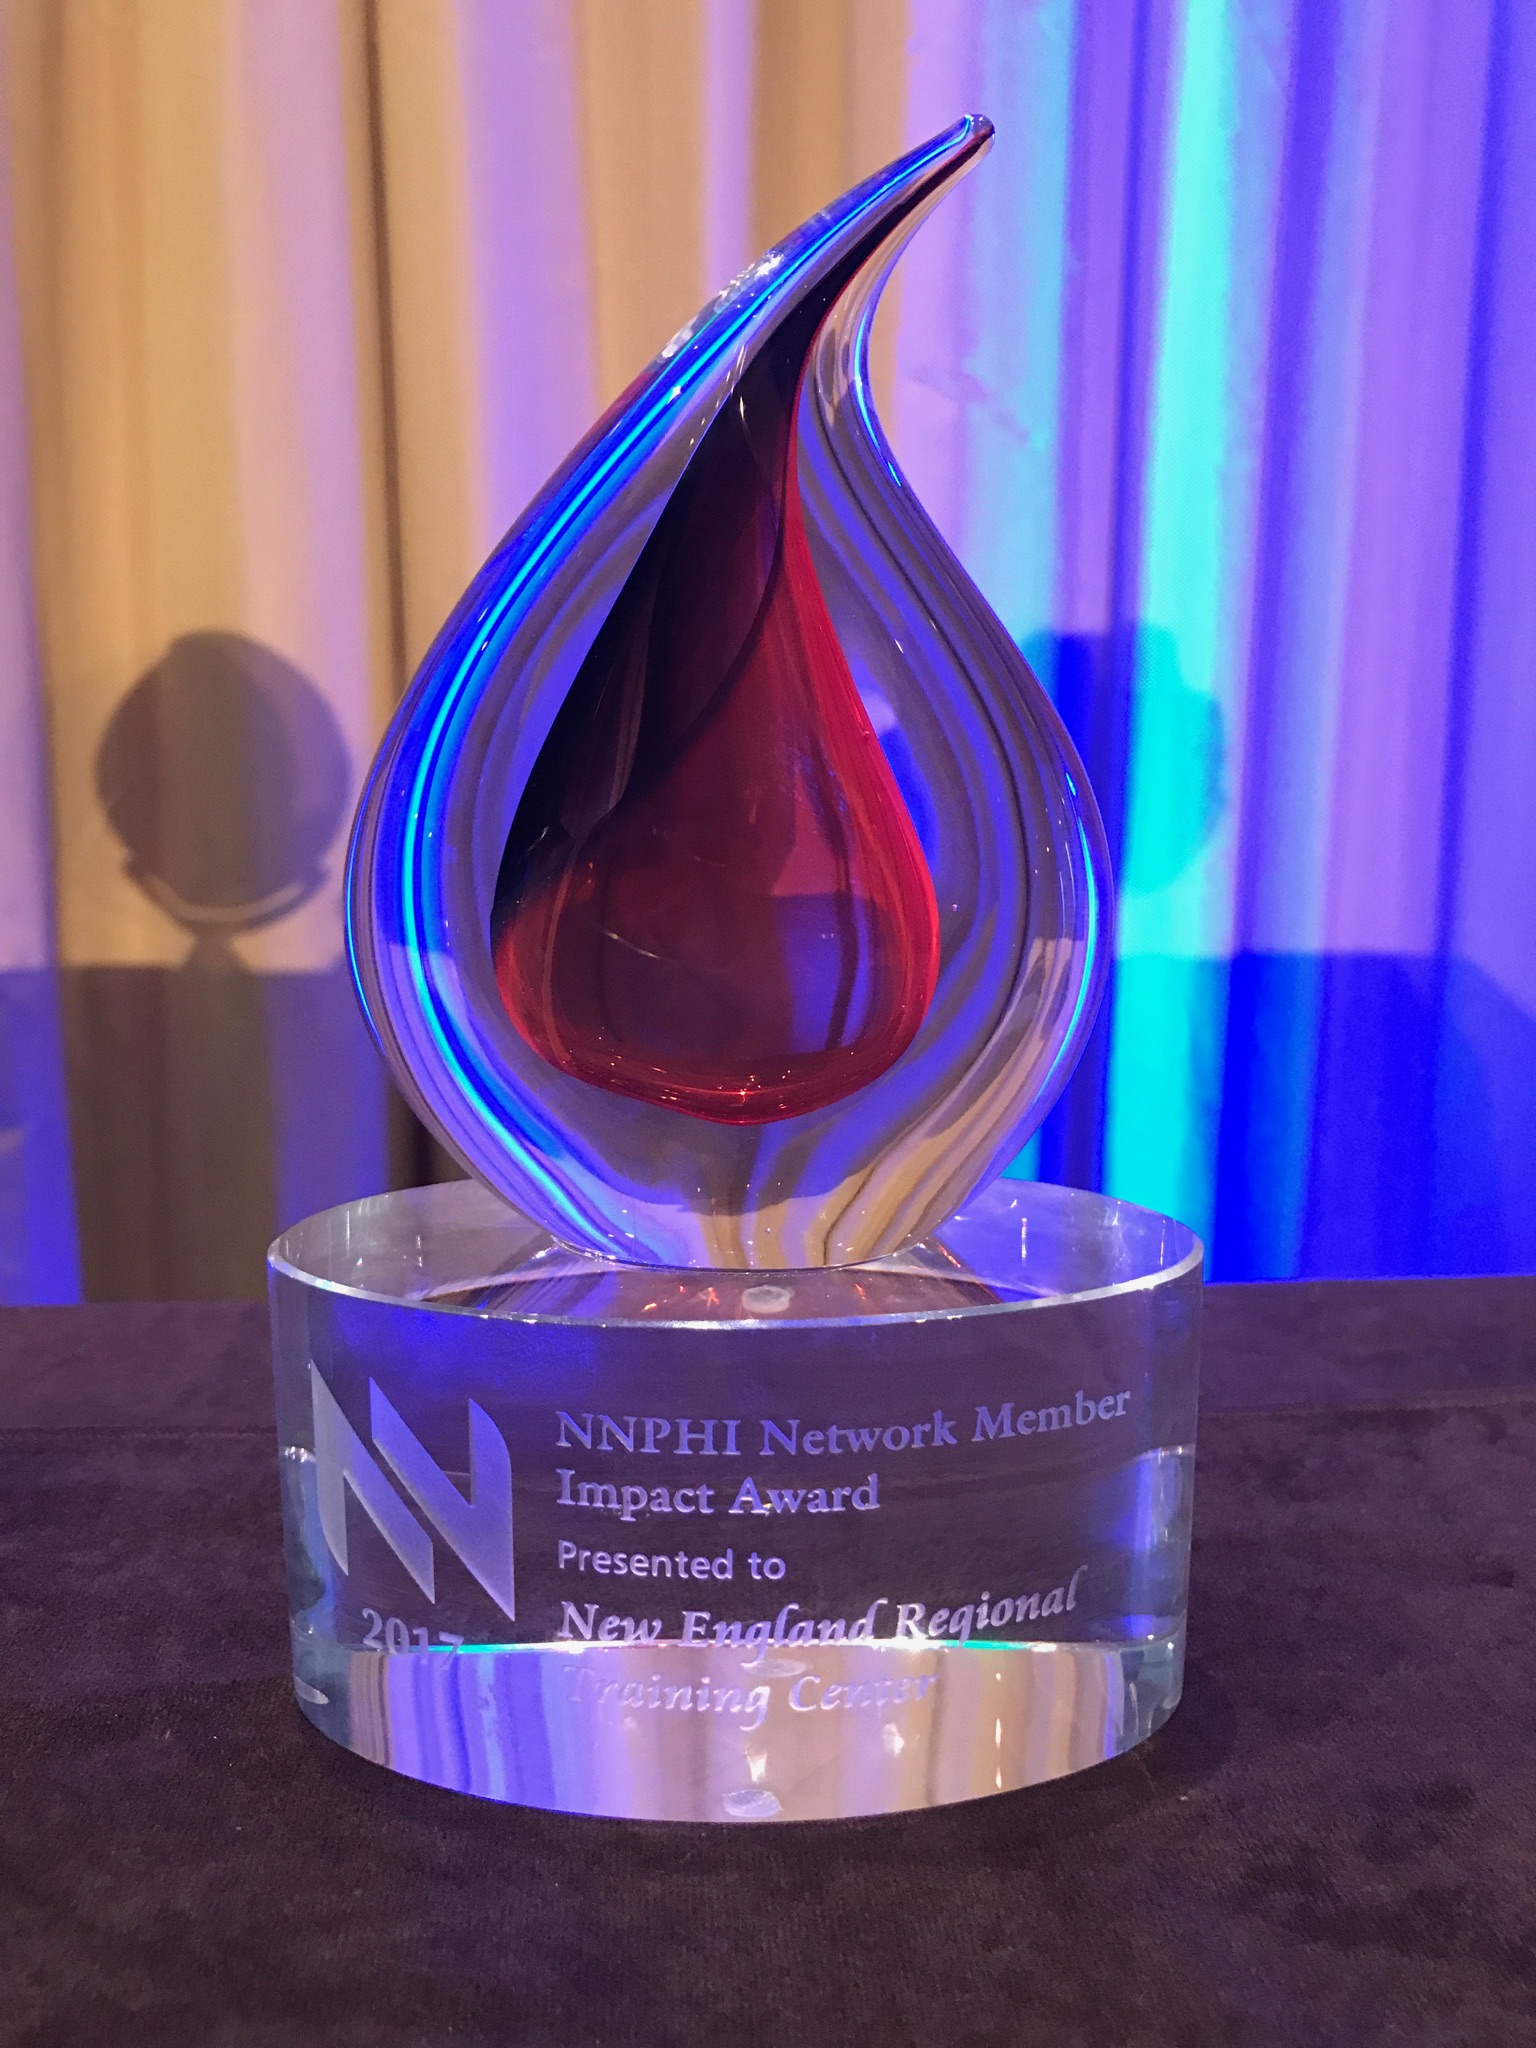 NEPHTC award original